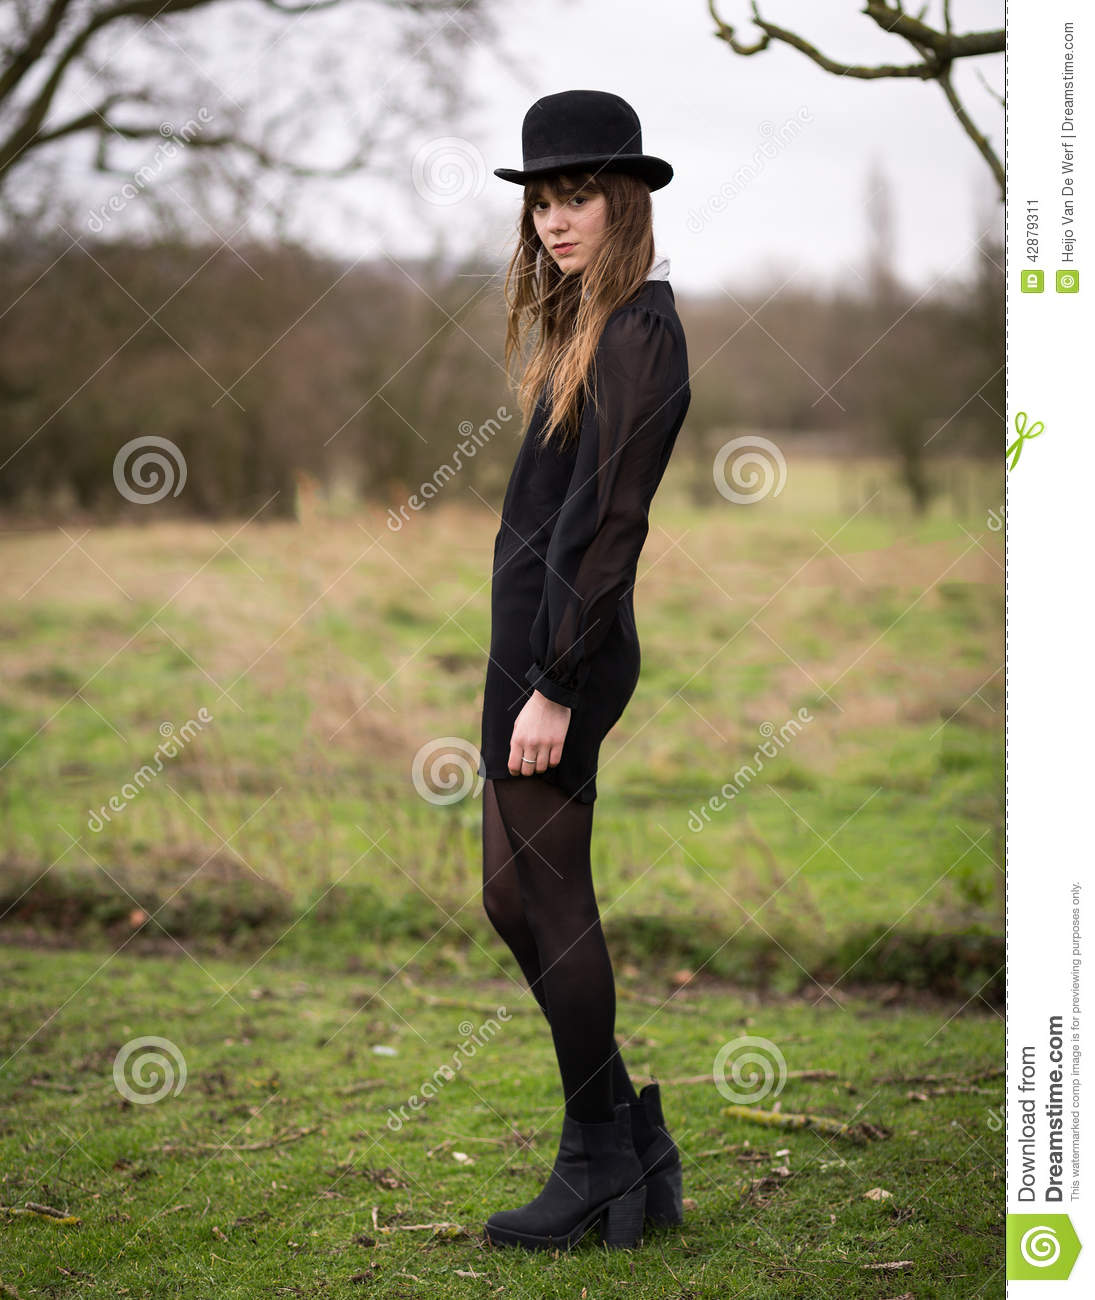 Original Beautiful Equestrian Woman Wearing Riding Boots And Plaid Poncho Stock Photo | Getty Images